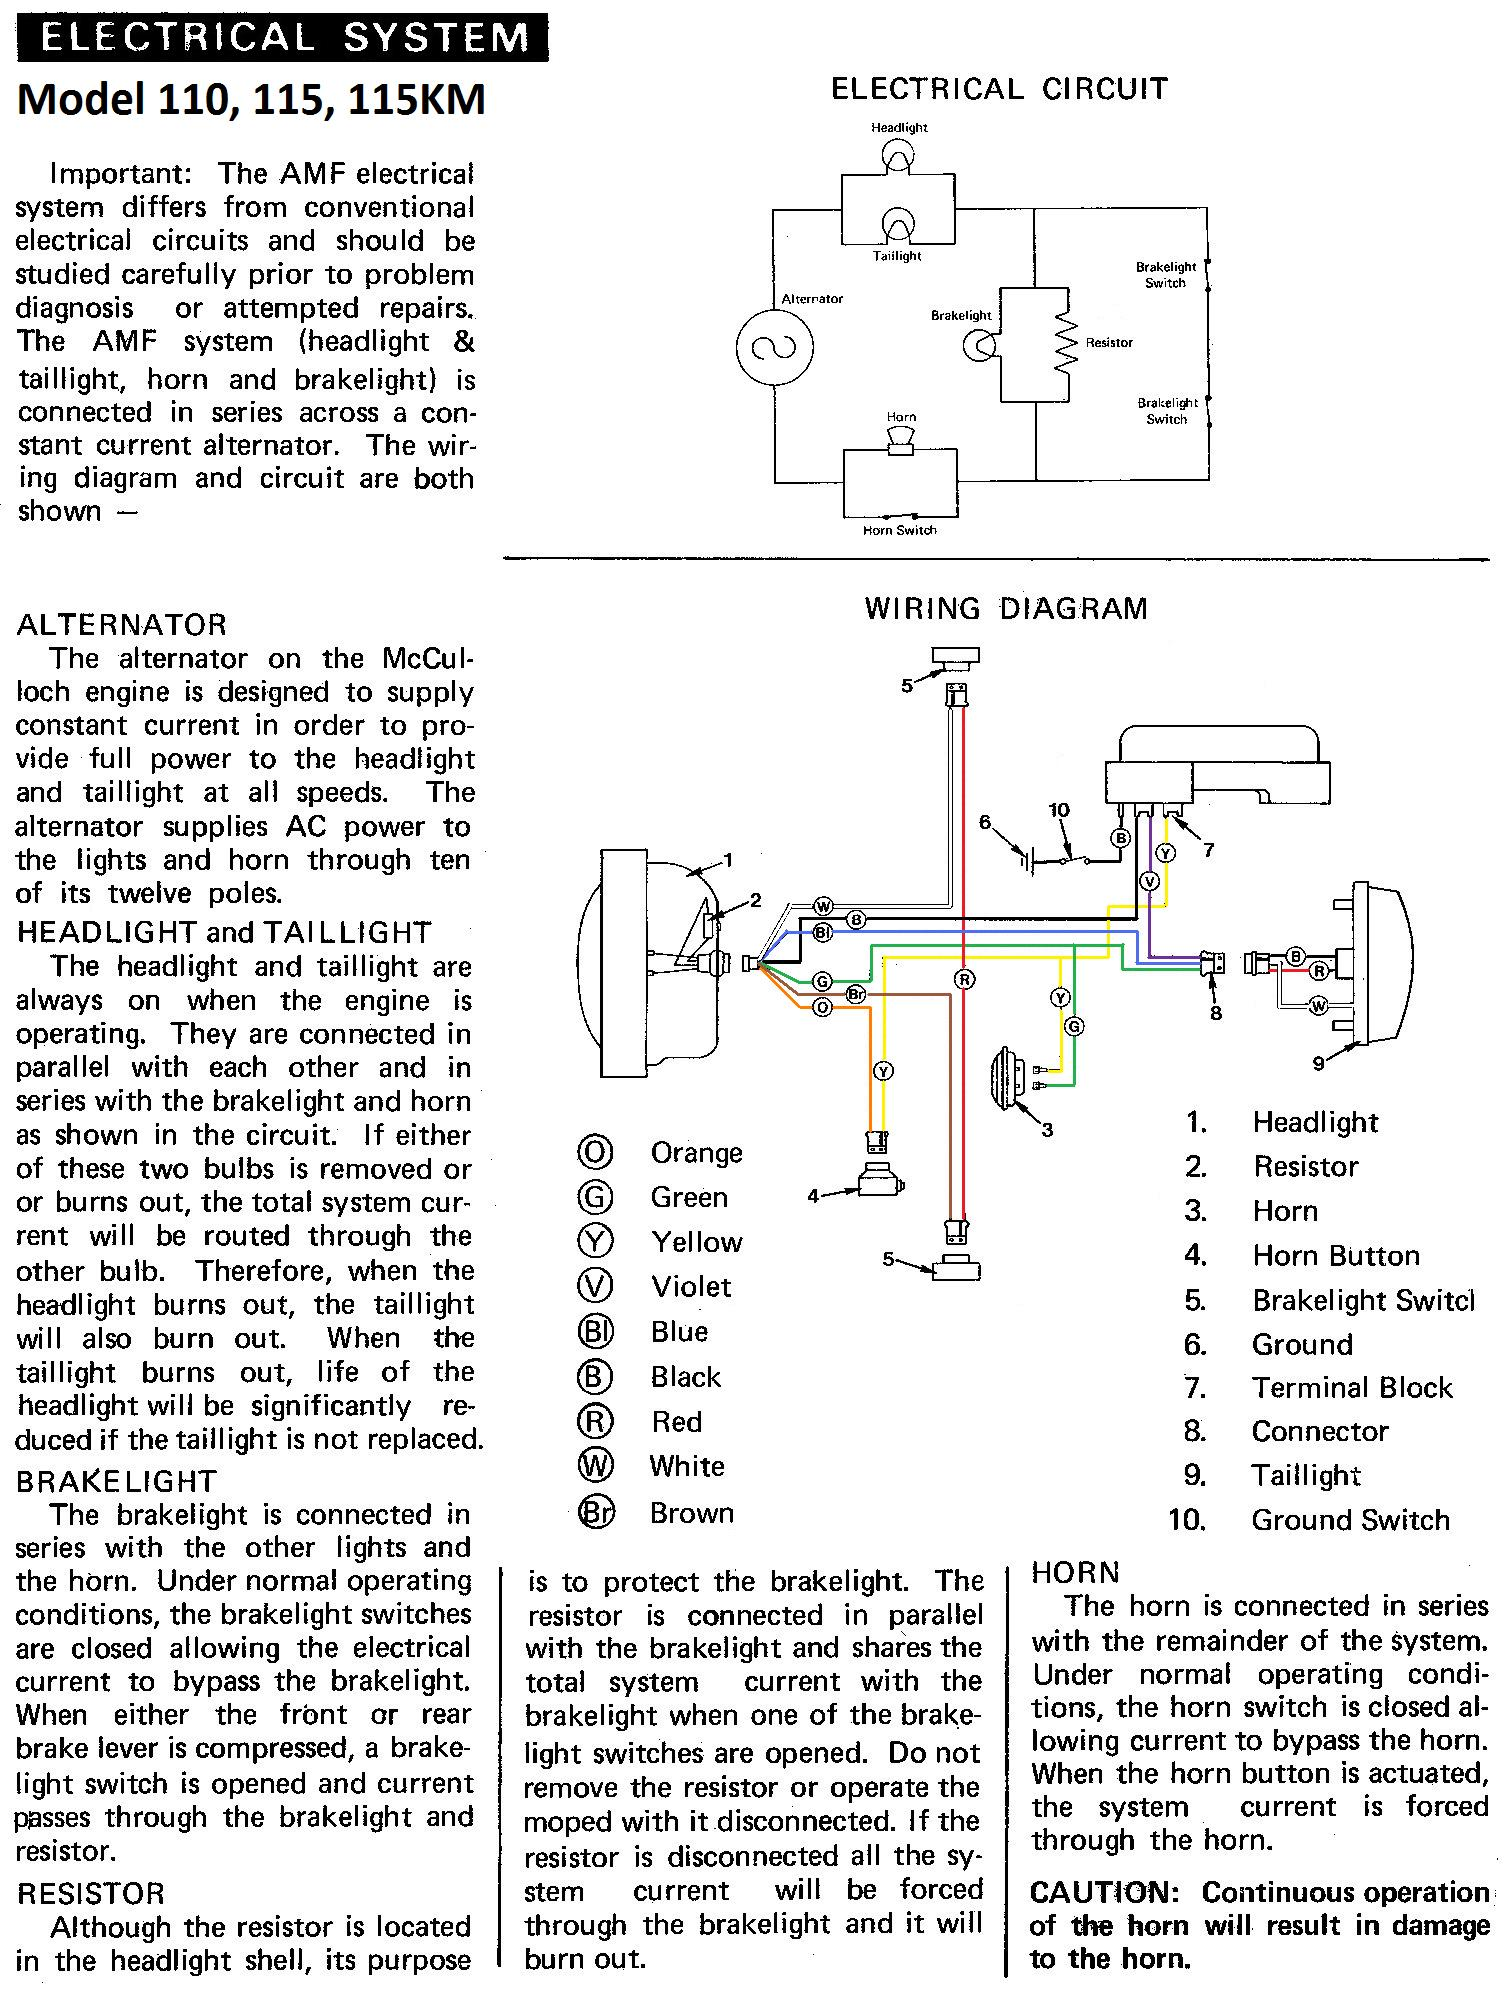 Ssr Lazer 5 Schematics Wiring Library 90 Quad Diagram Amf 110 115 115km Electrical And